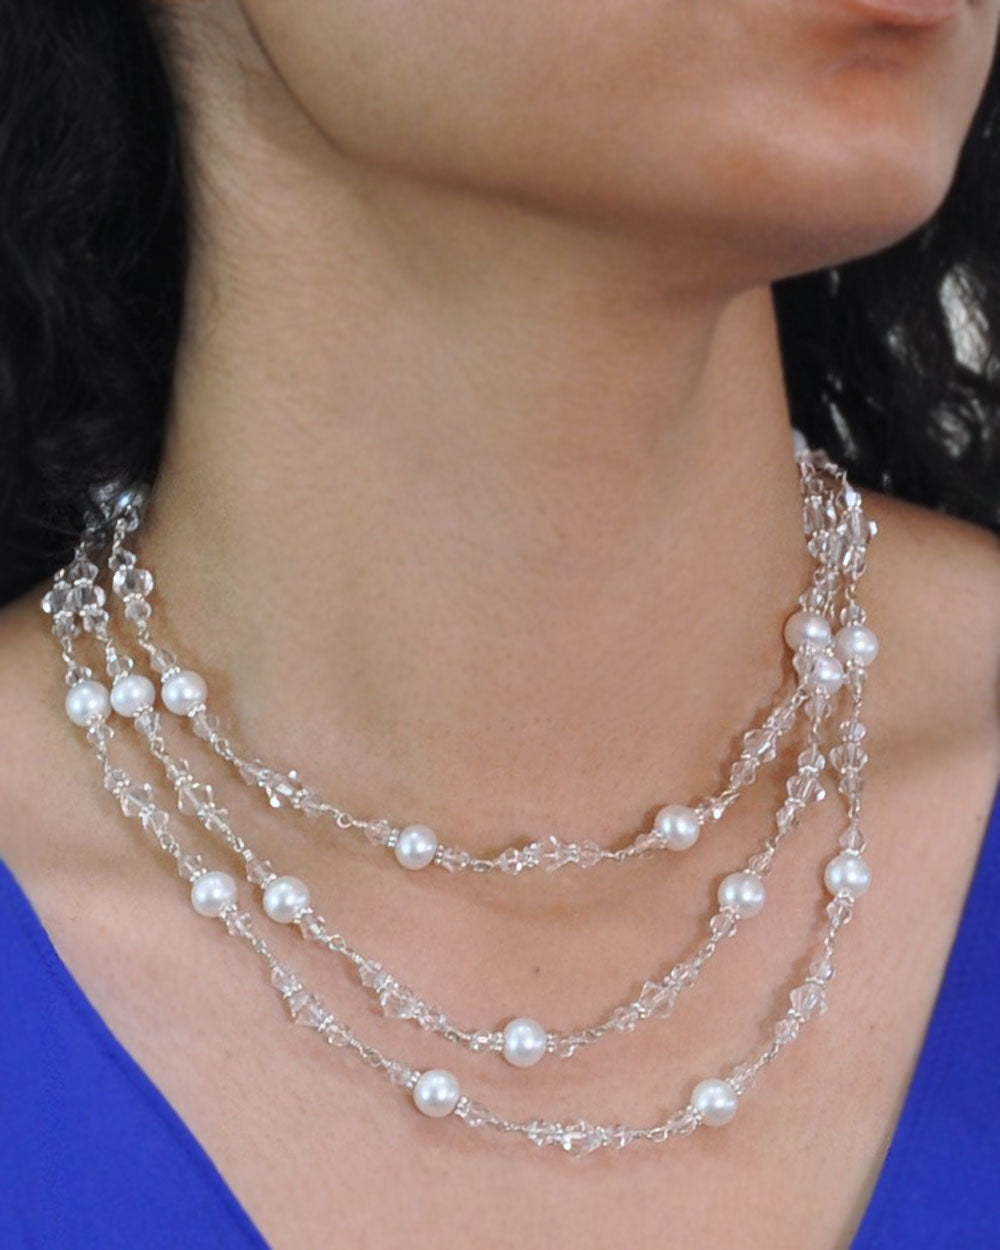 Iridescent White Crystals and Pearls Multi Layered Necklace